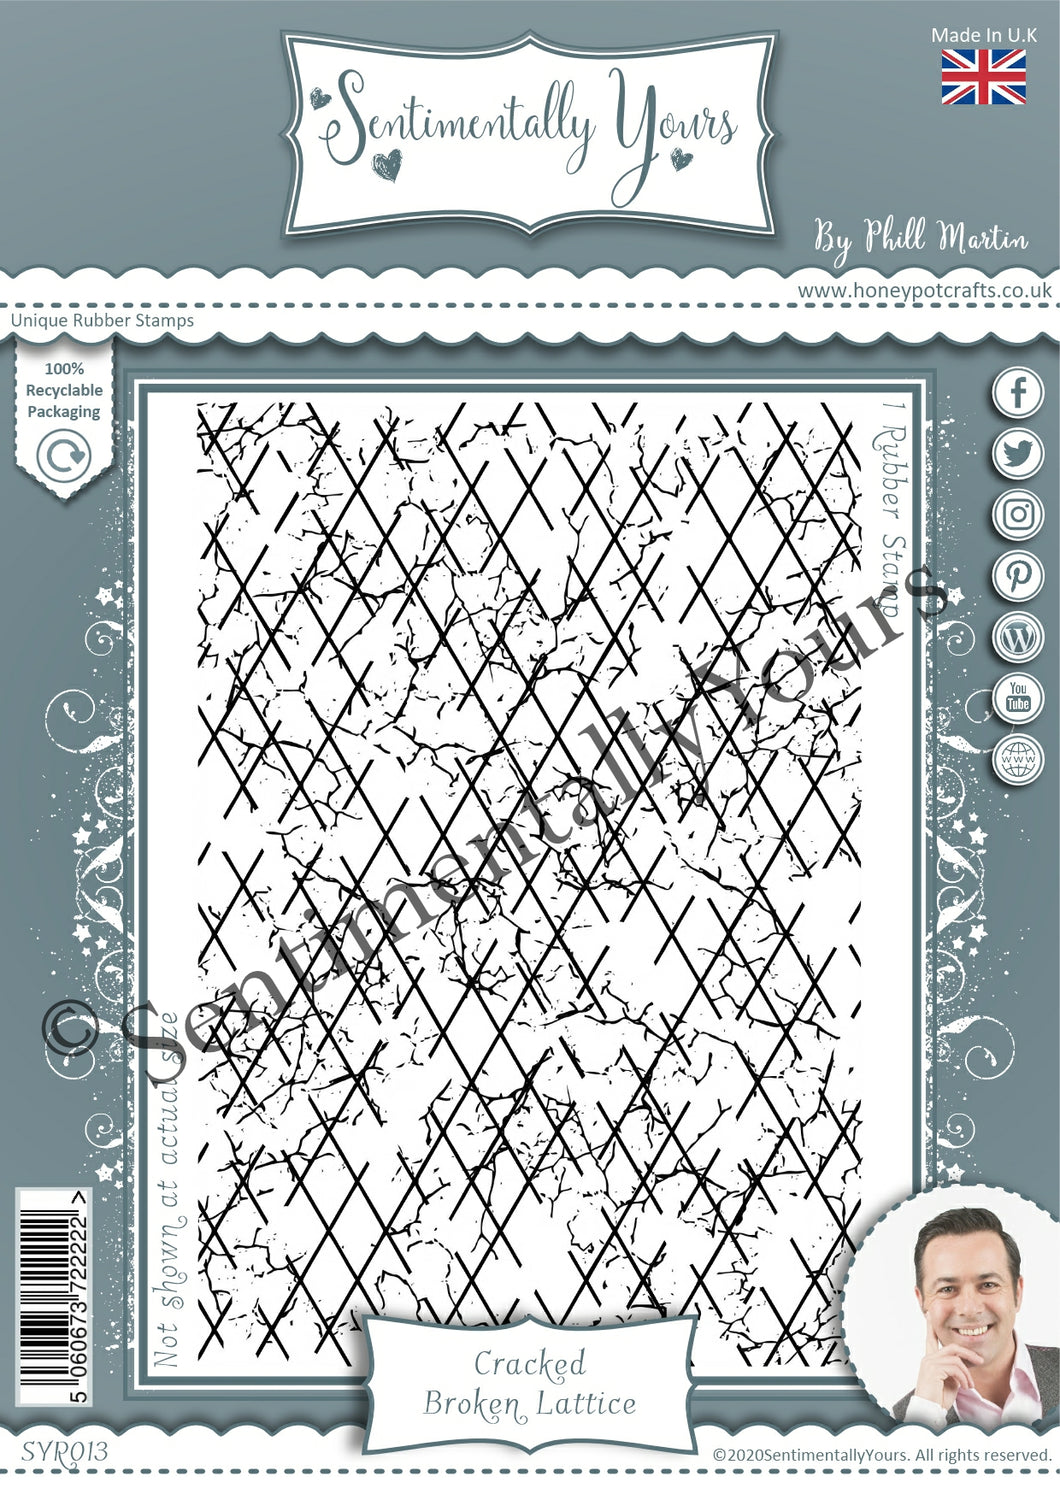 Sentimentally Yours A6 Rubber Stamp - Cracked Broken Lattice